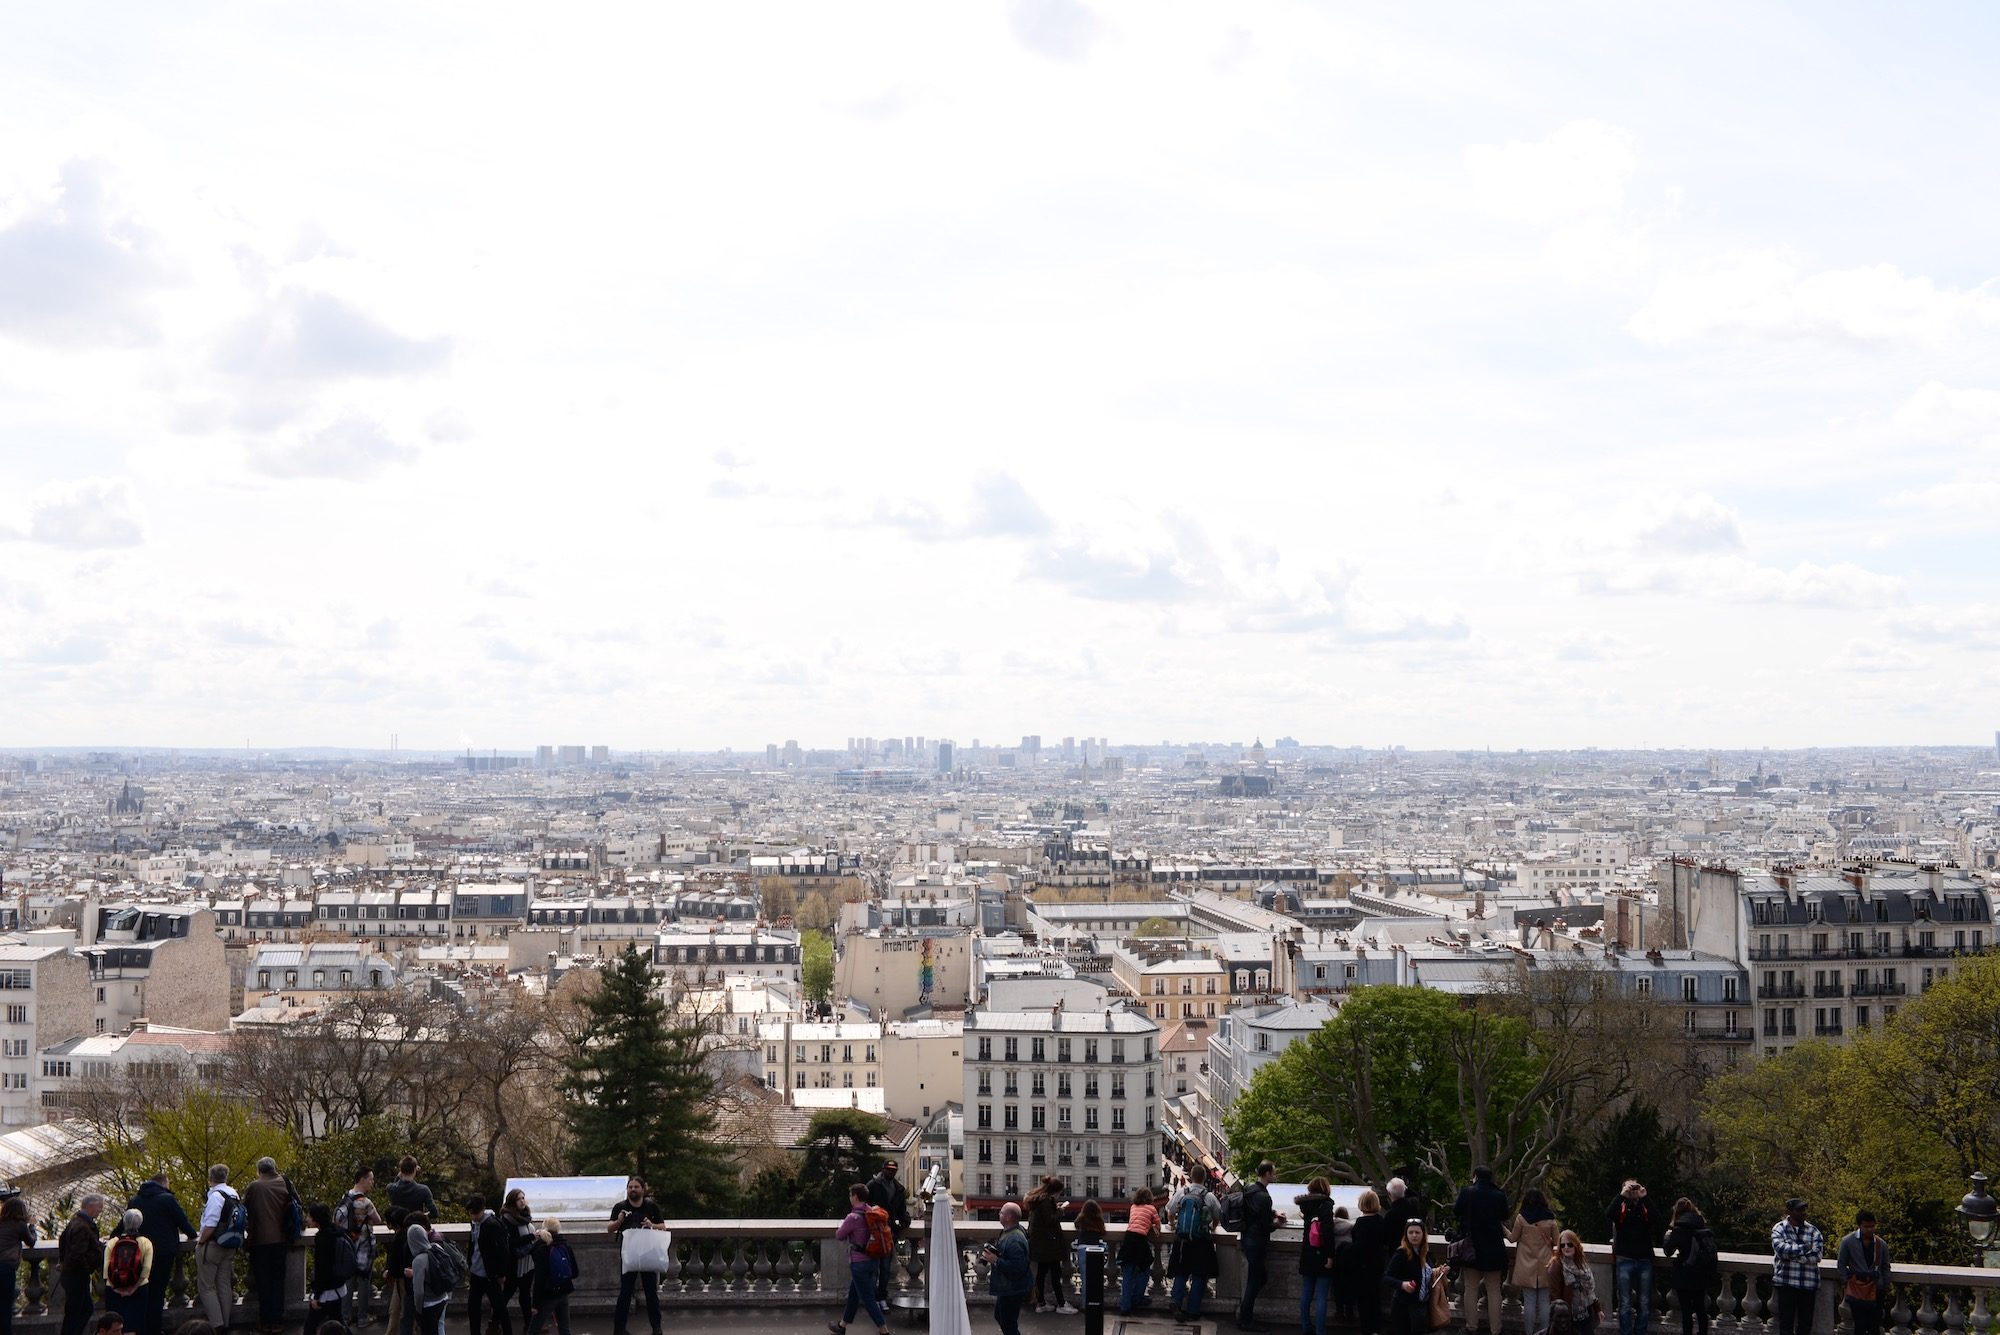 When you visit Paris for the first time, you have to visit Montmartre and see the views of the Paris rooftops from the Sacré Coeur Basilica.